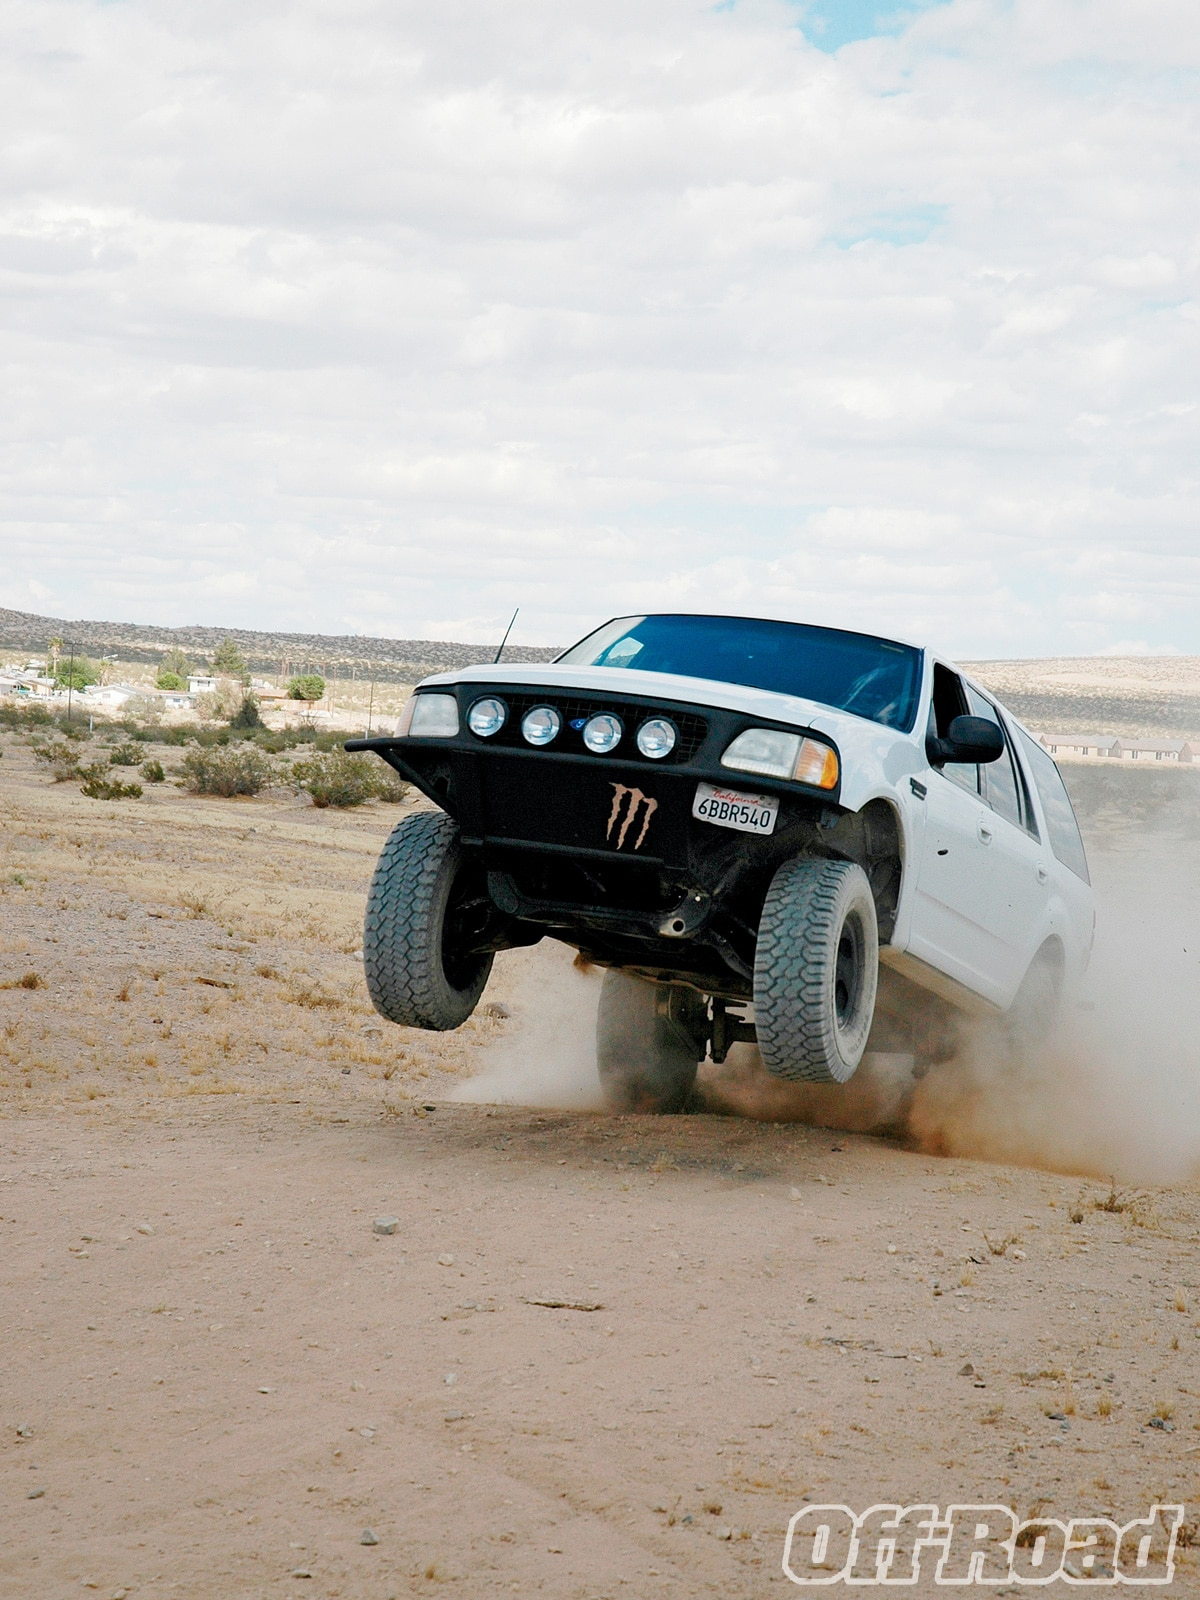 1012or 12 +the dezert dimes day in the barstow desert+offroad truck